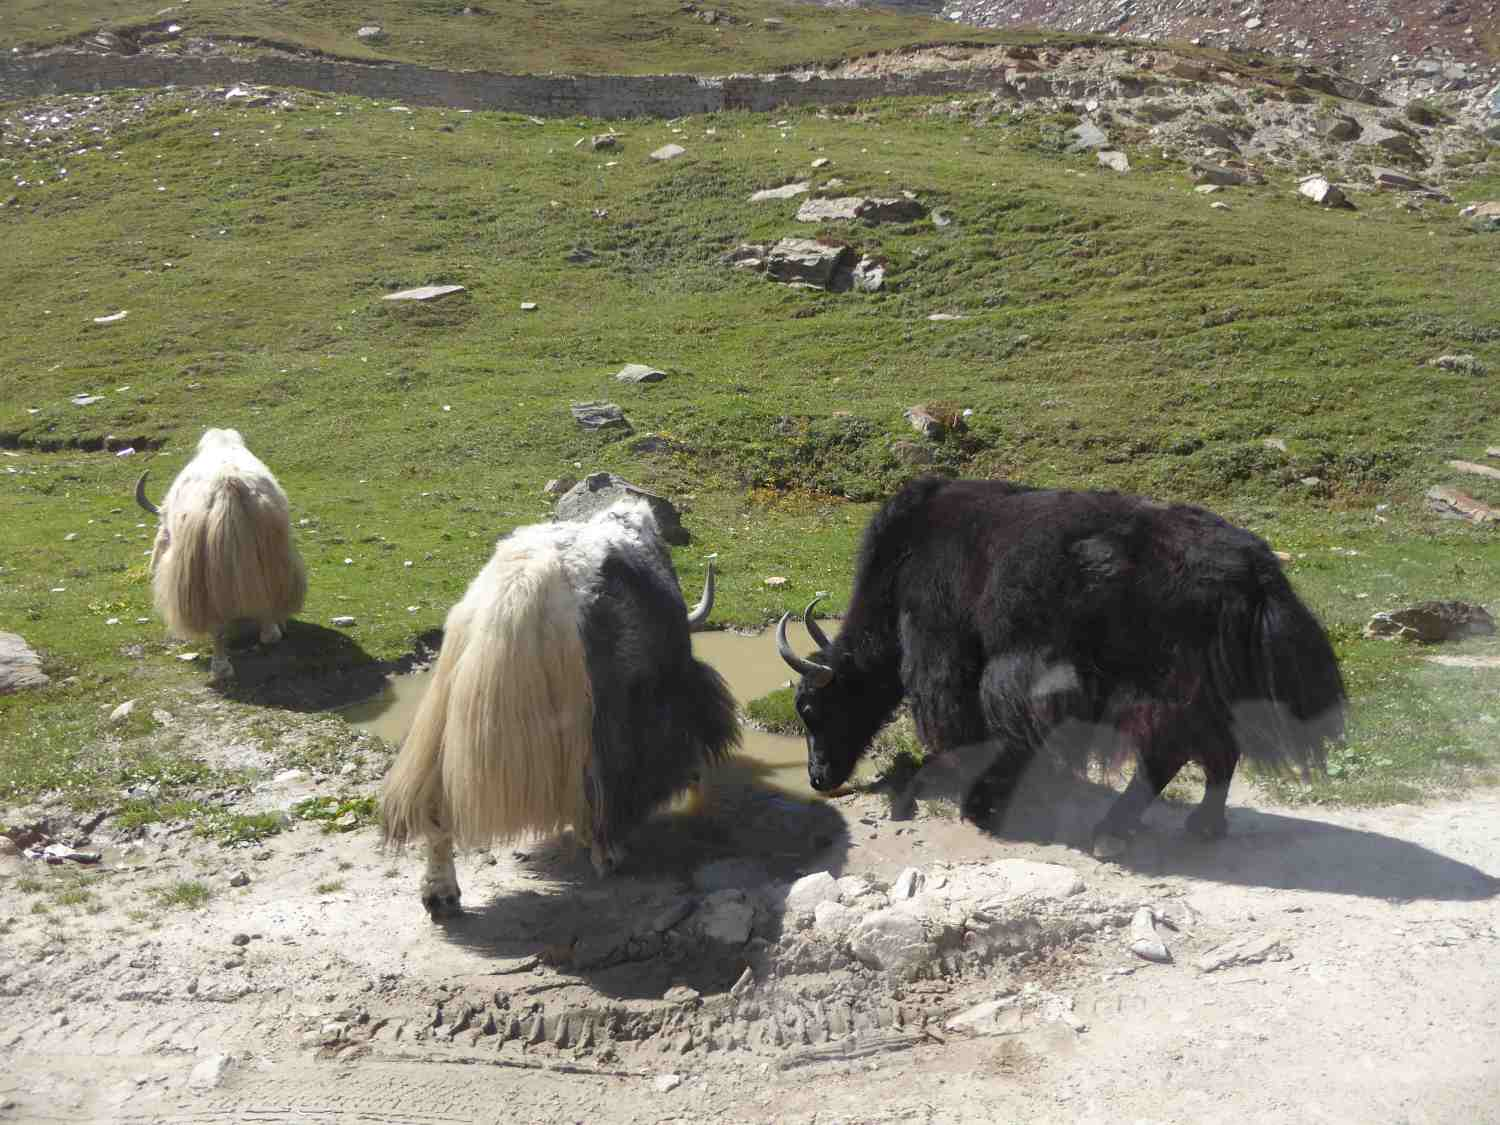 White, black, white/black yaks in search of food